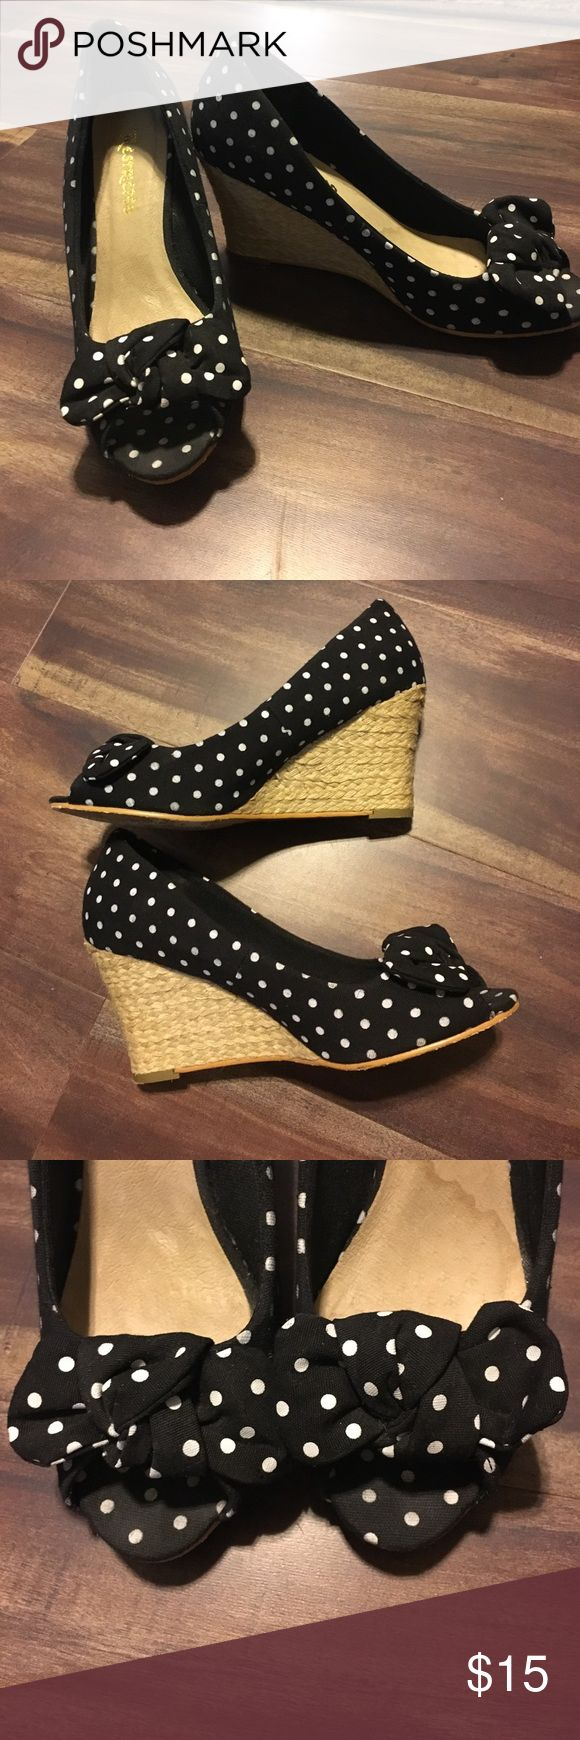 B&W Polka dot wedge, size 7 Black and white Restricted polka dot wedge sandal with knot bows on toe. Worn a couple of times but still in great condition. *Left shoe on inside leather has a water mark line. Restricted Shoes Wedges